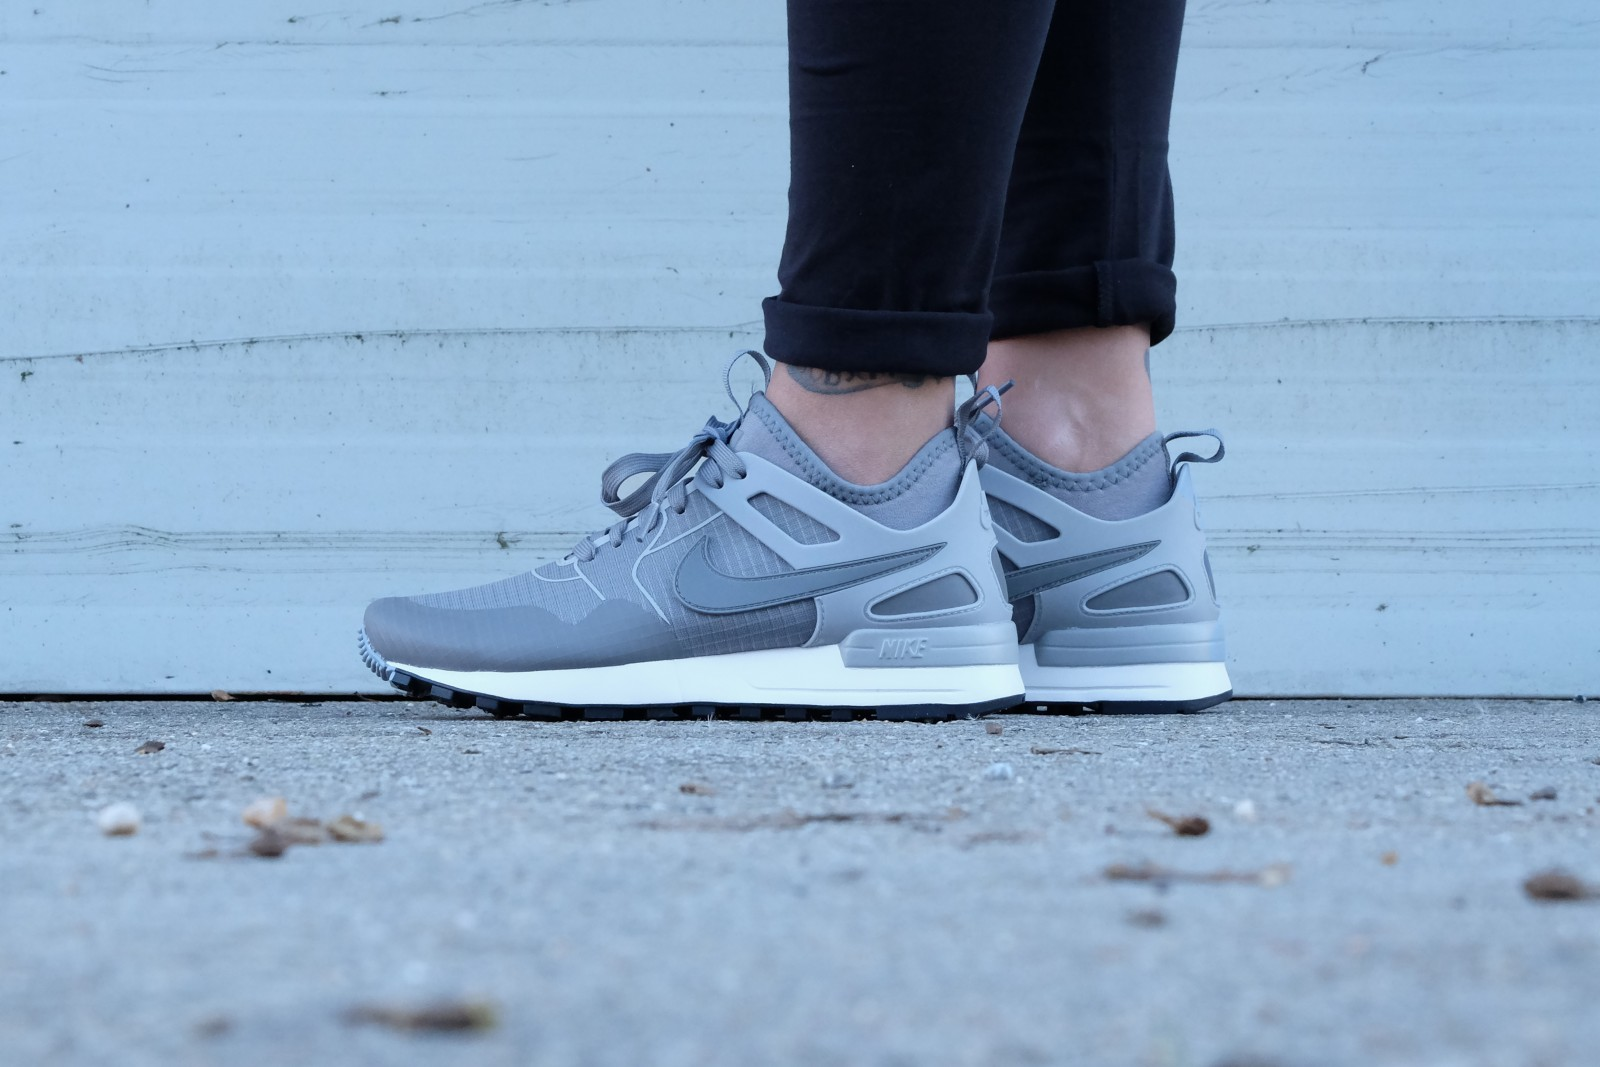 Nike WMNS Air Pegasus 89 Tech Cool GreyCool Grey Summit White 861688 002